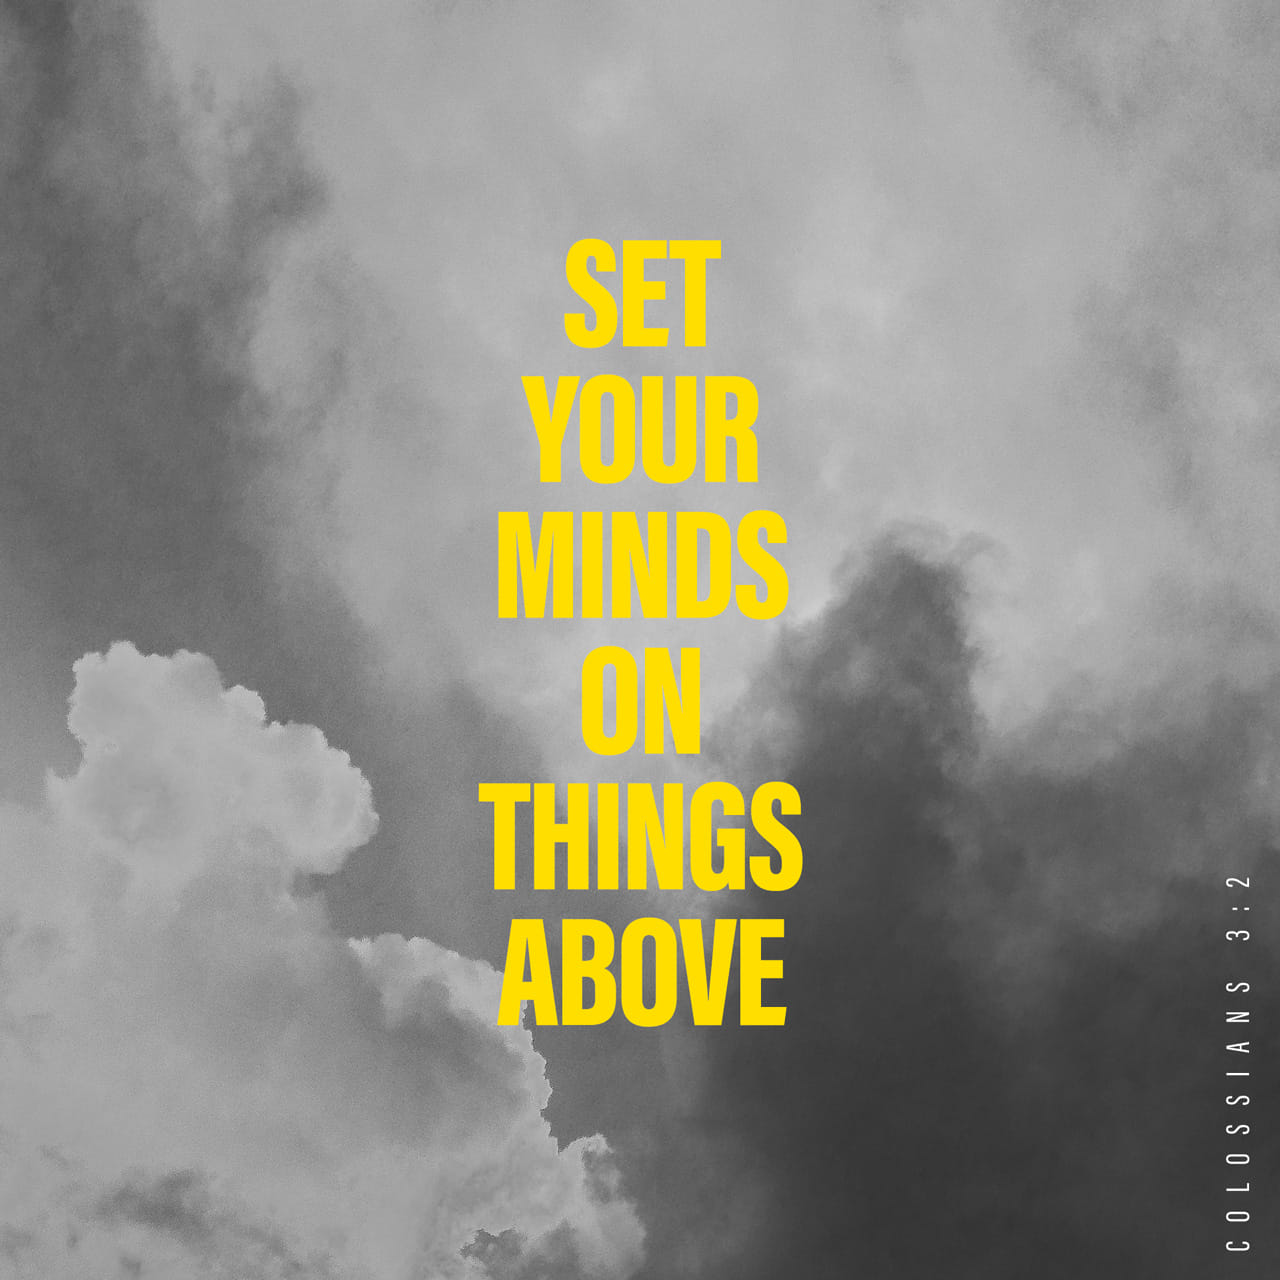 Colossians 3:1-2 Since you have been raised to new life with Christ, set your sights on the realities of heaven, where Christ sits in the place of honor at God's right hand. Think about the things of heaven, not the t | New Living Translation (NLT)